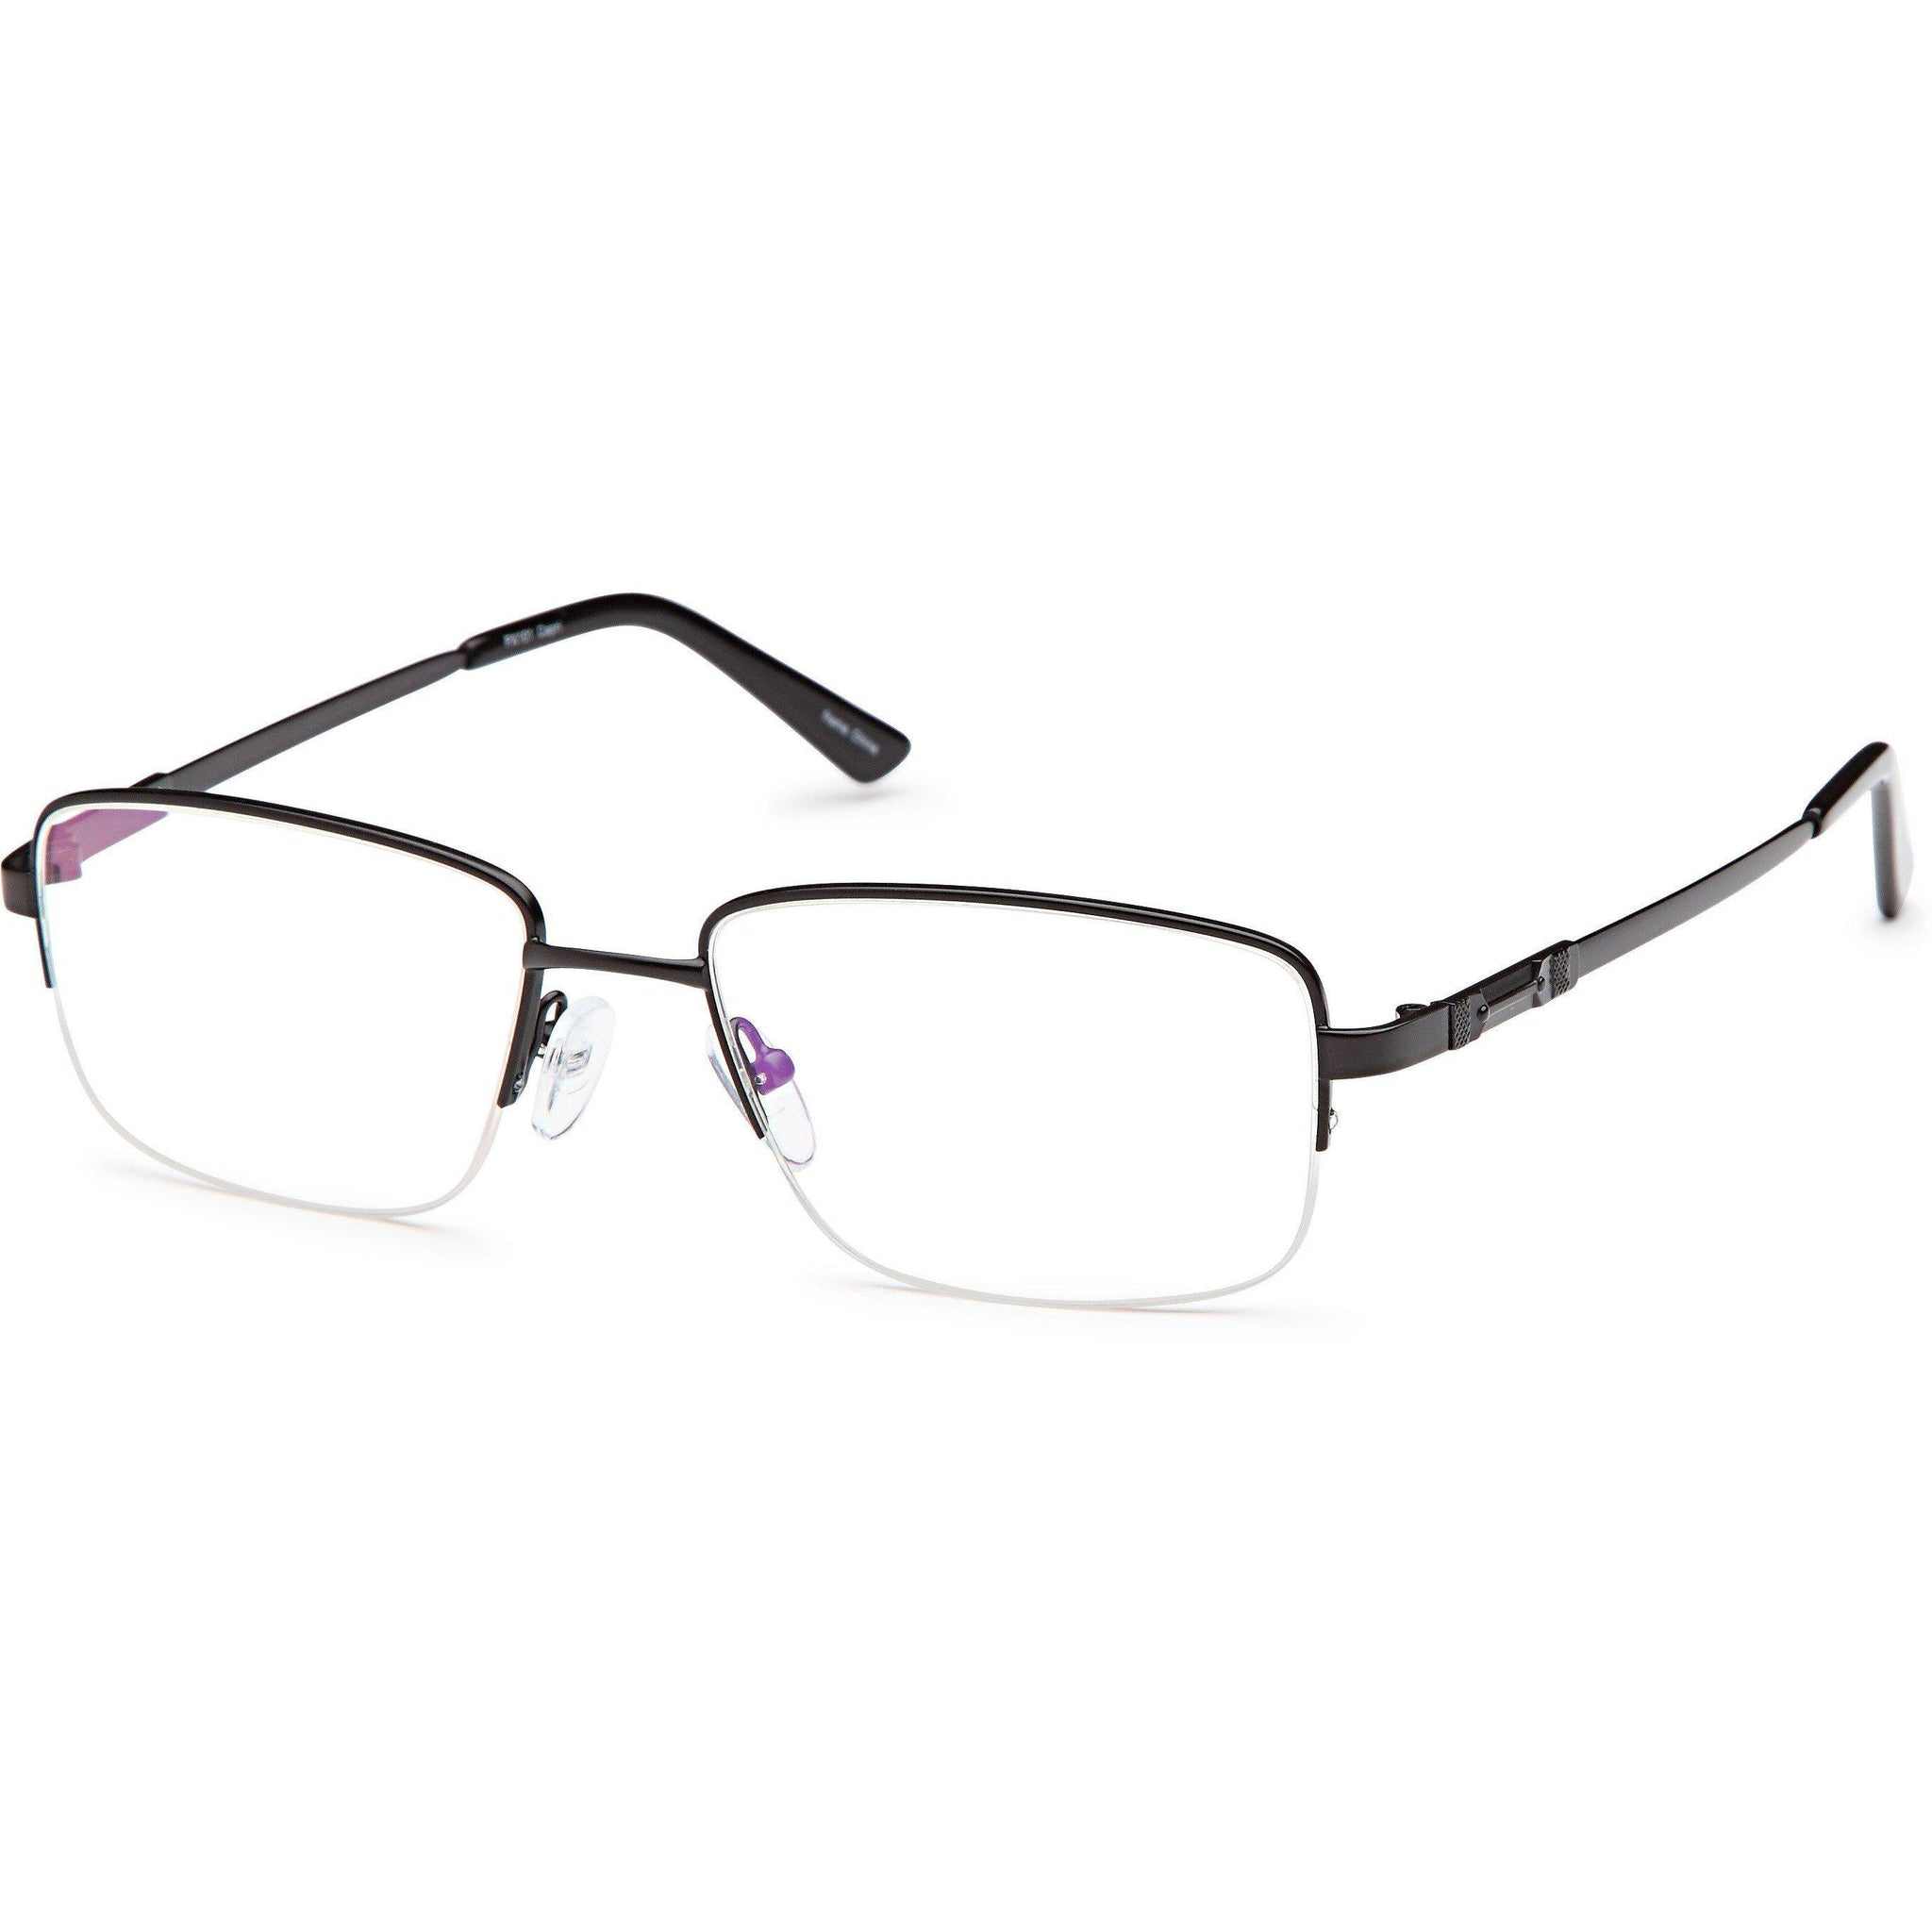 Titanium Prescription Glasses FX 101 Eyeglasses Frame